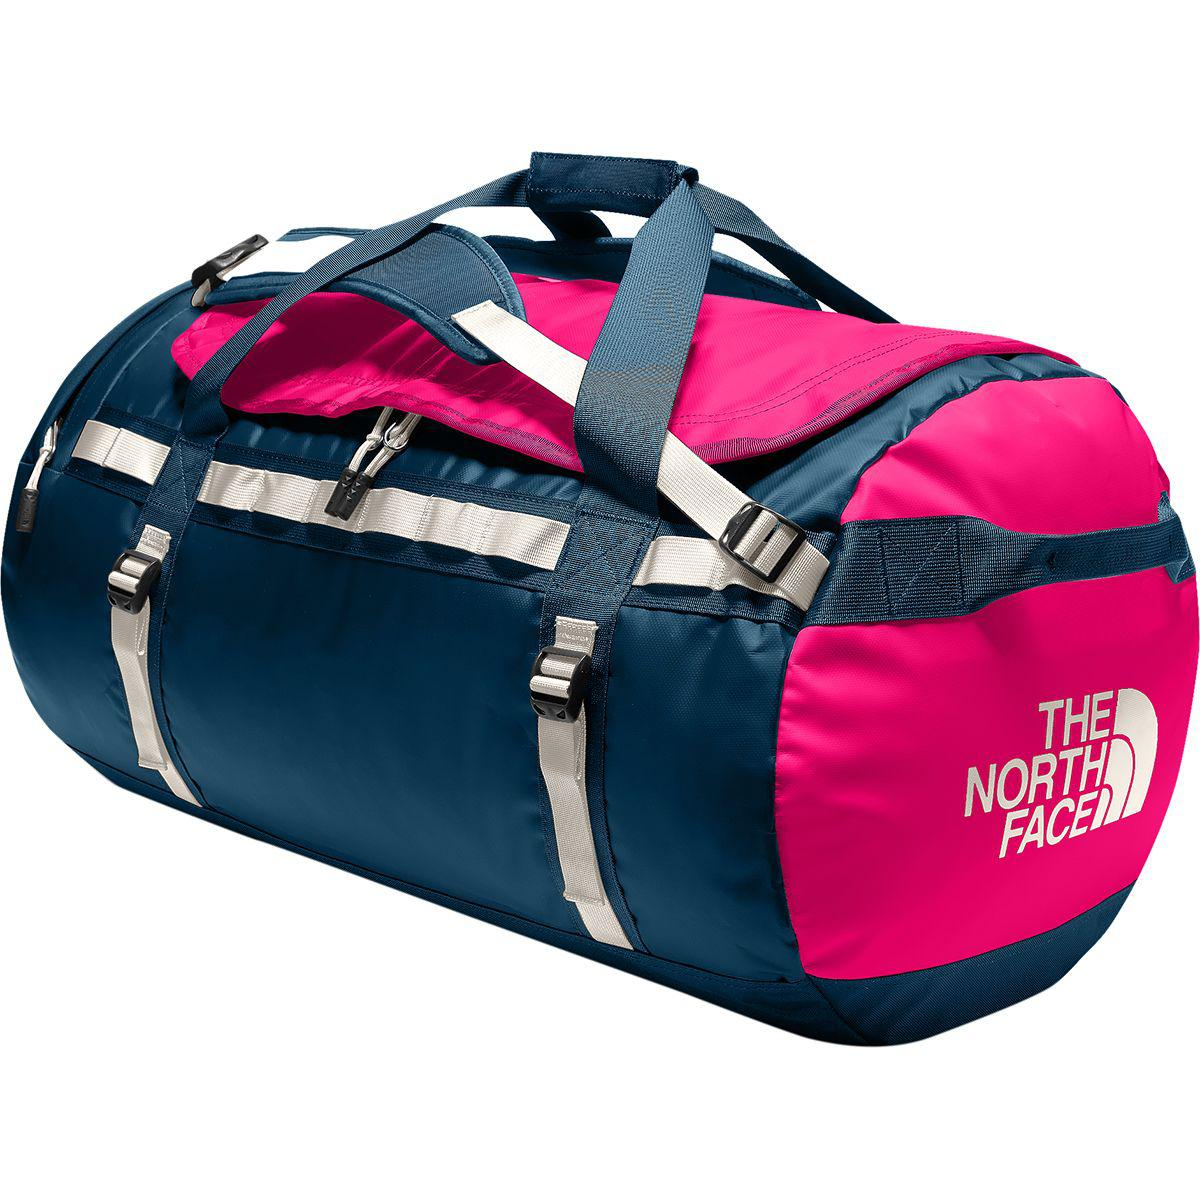 Lyst - The North Face Base Camp 95l Duffel in Red for Men 280bd42d80d6f